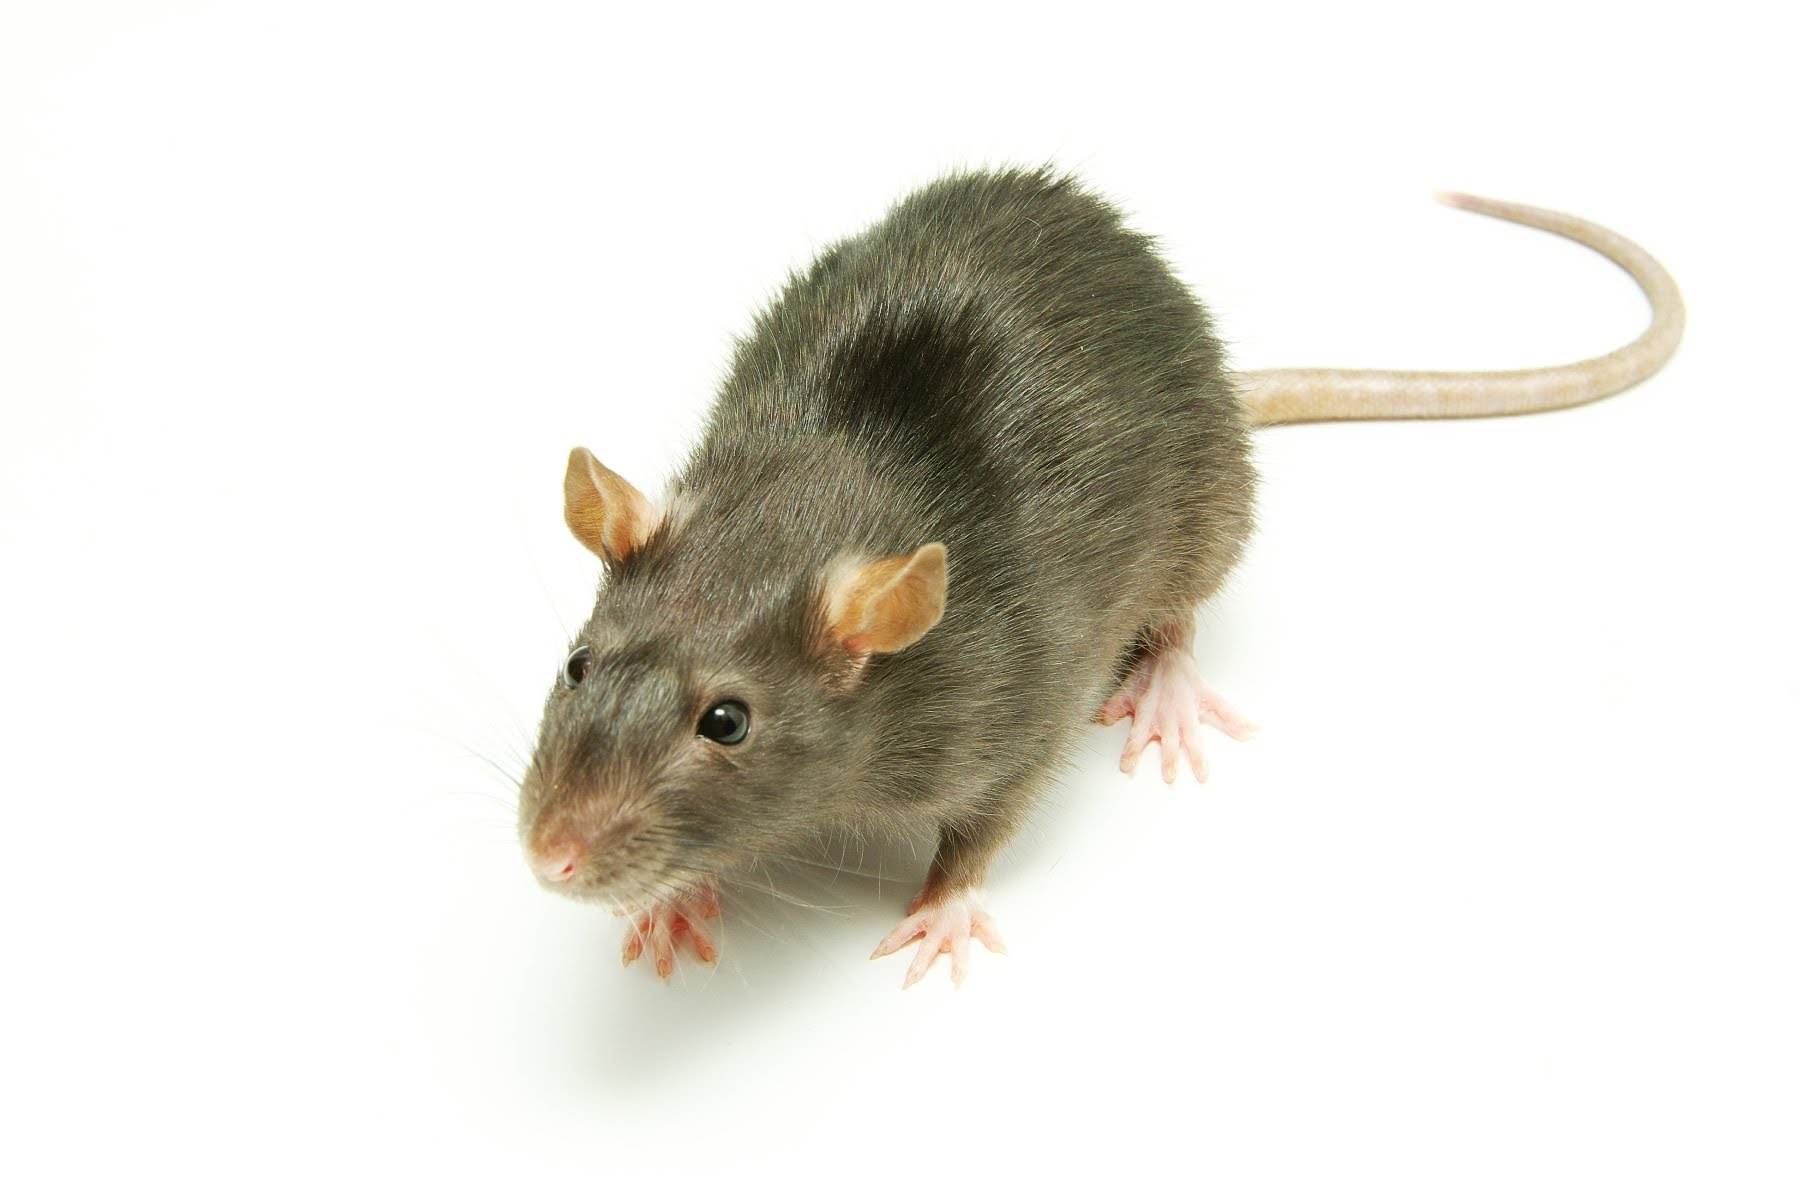 Leave Your Rodent Problem Outside